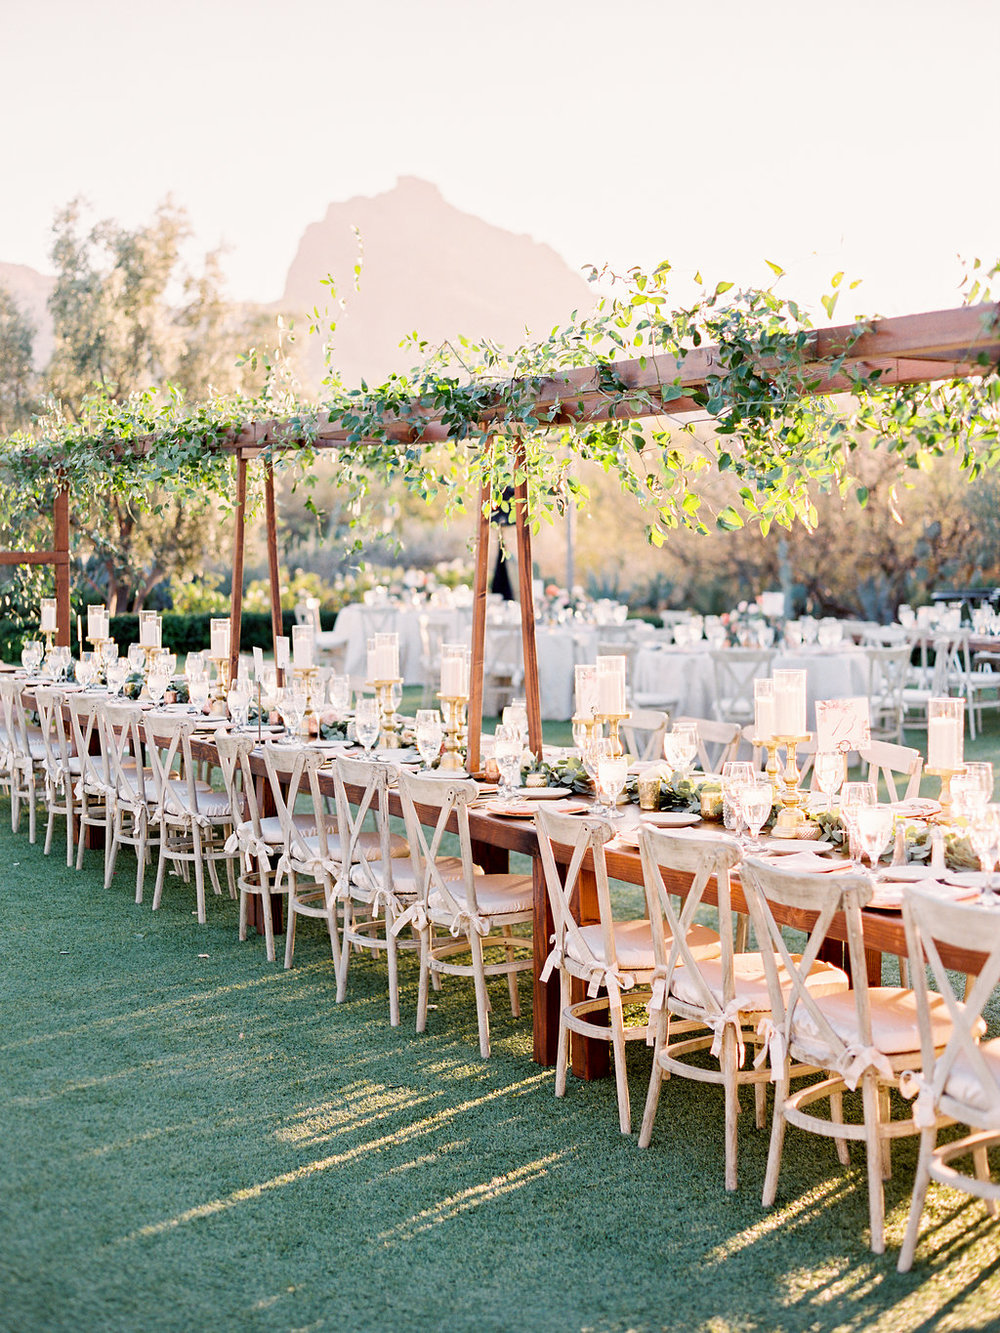 Head Table Goals.jpg